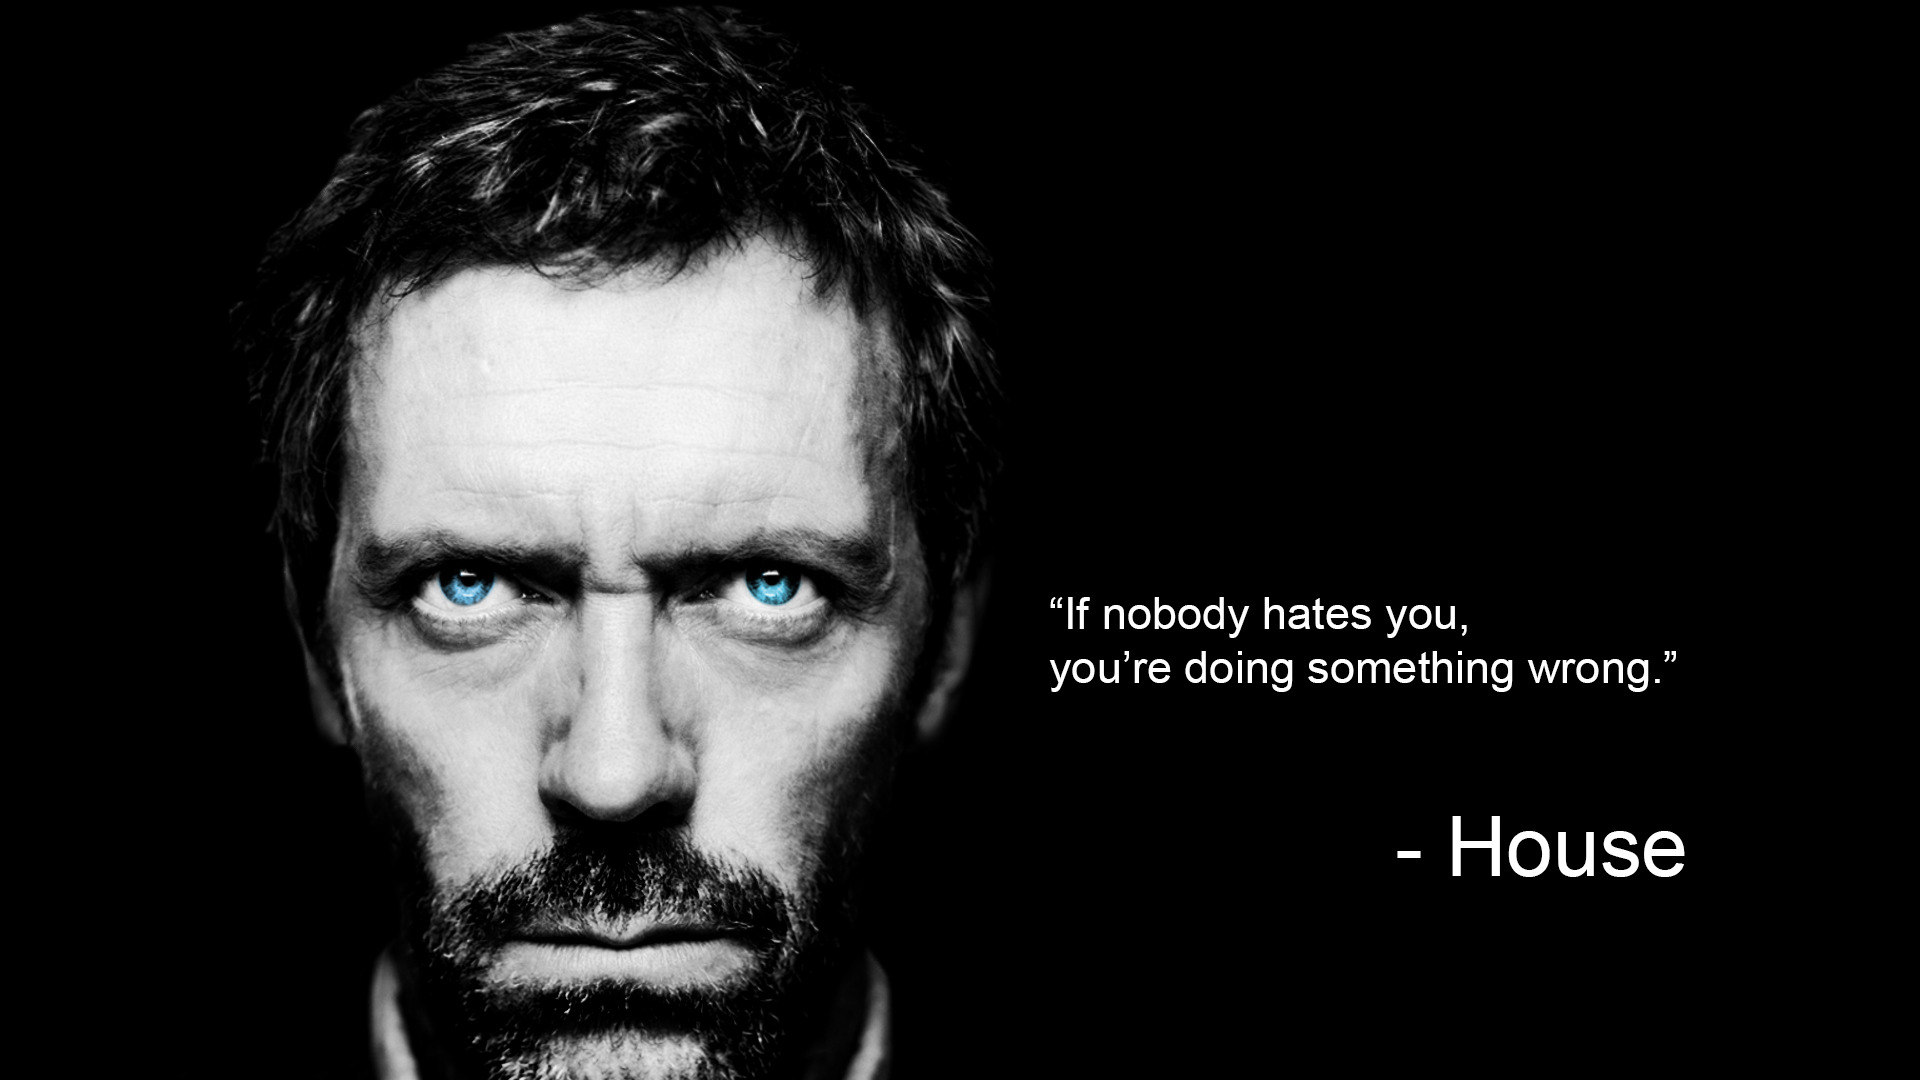 Dr House Quote HD Wallpaper 1920x1080